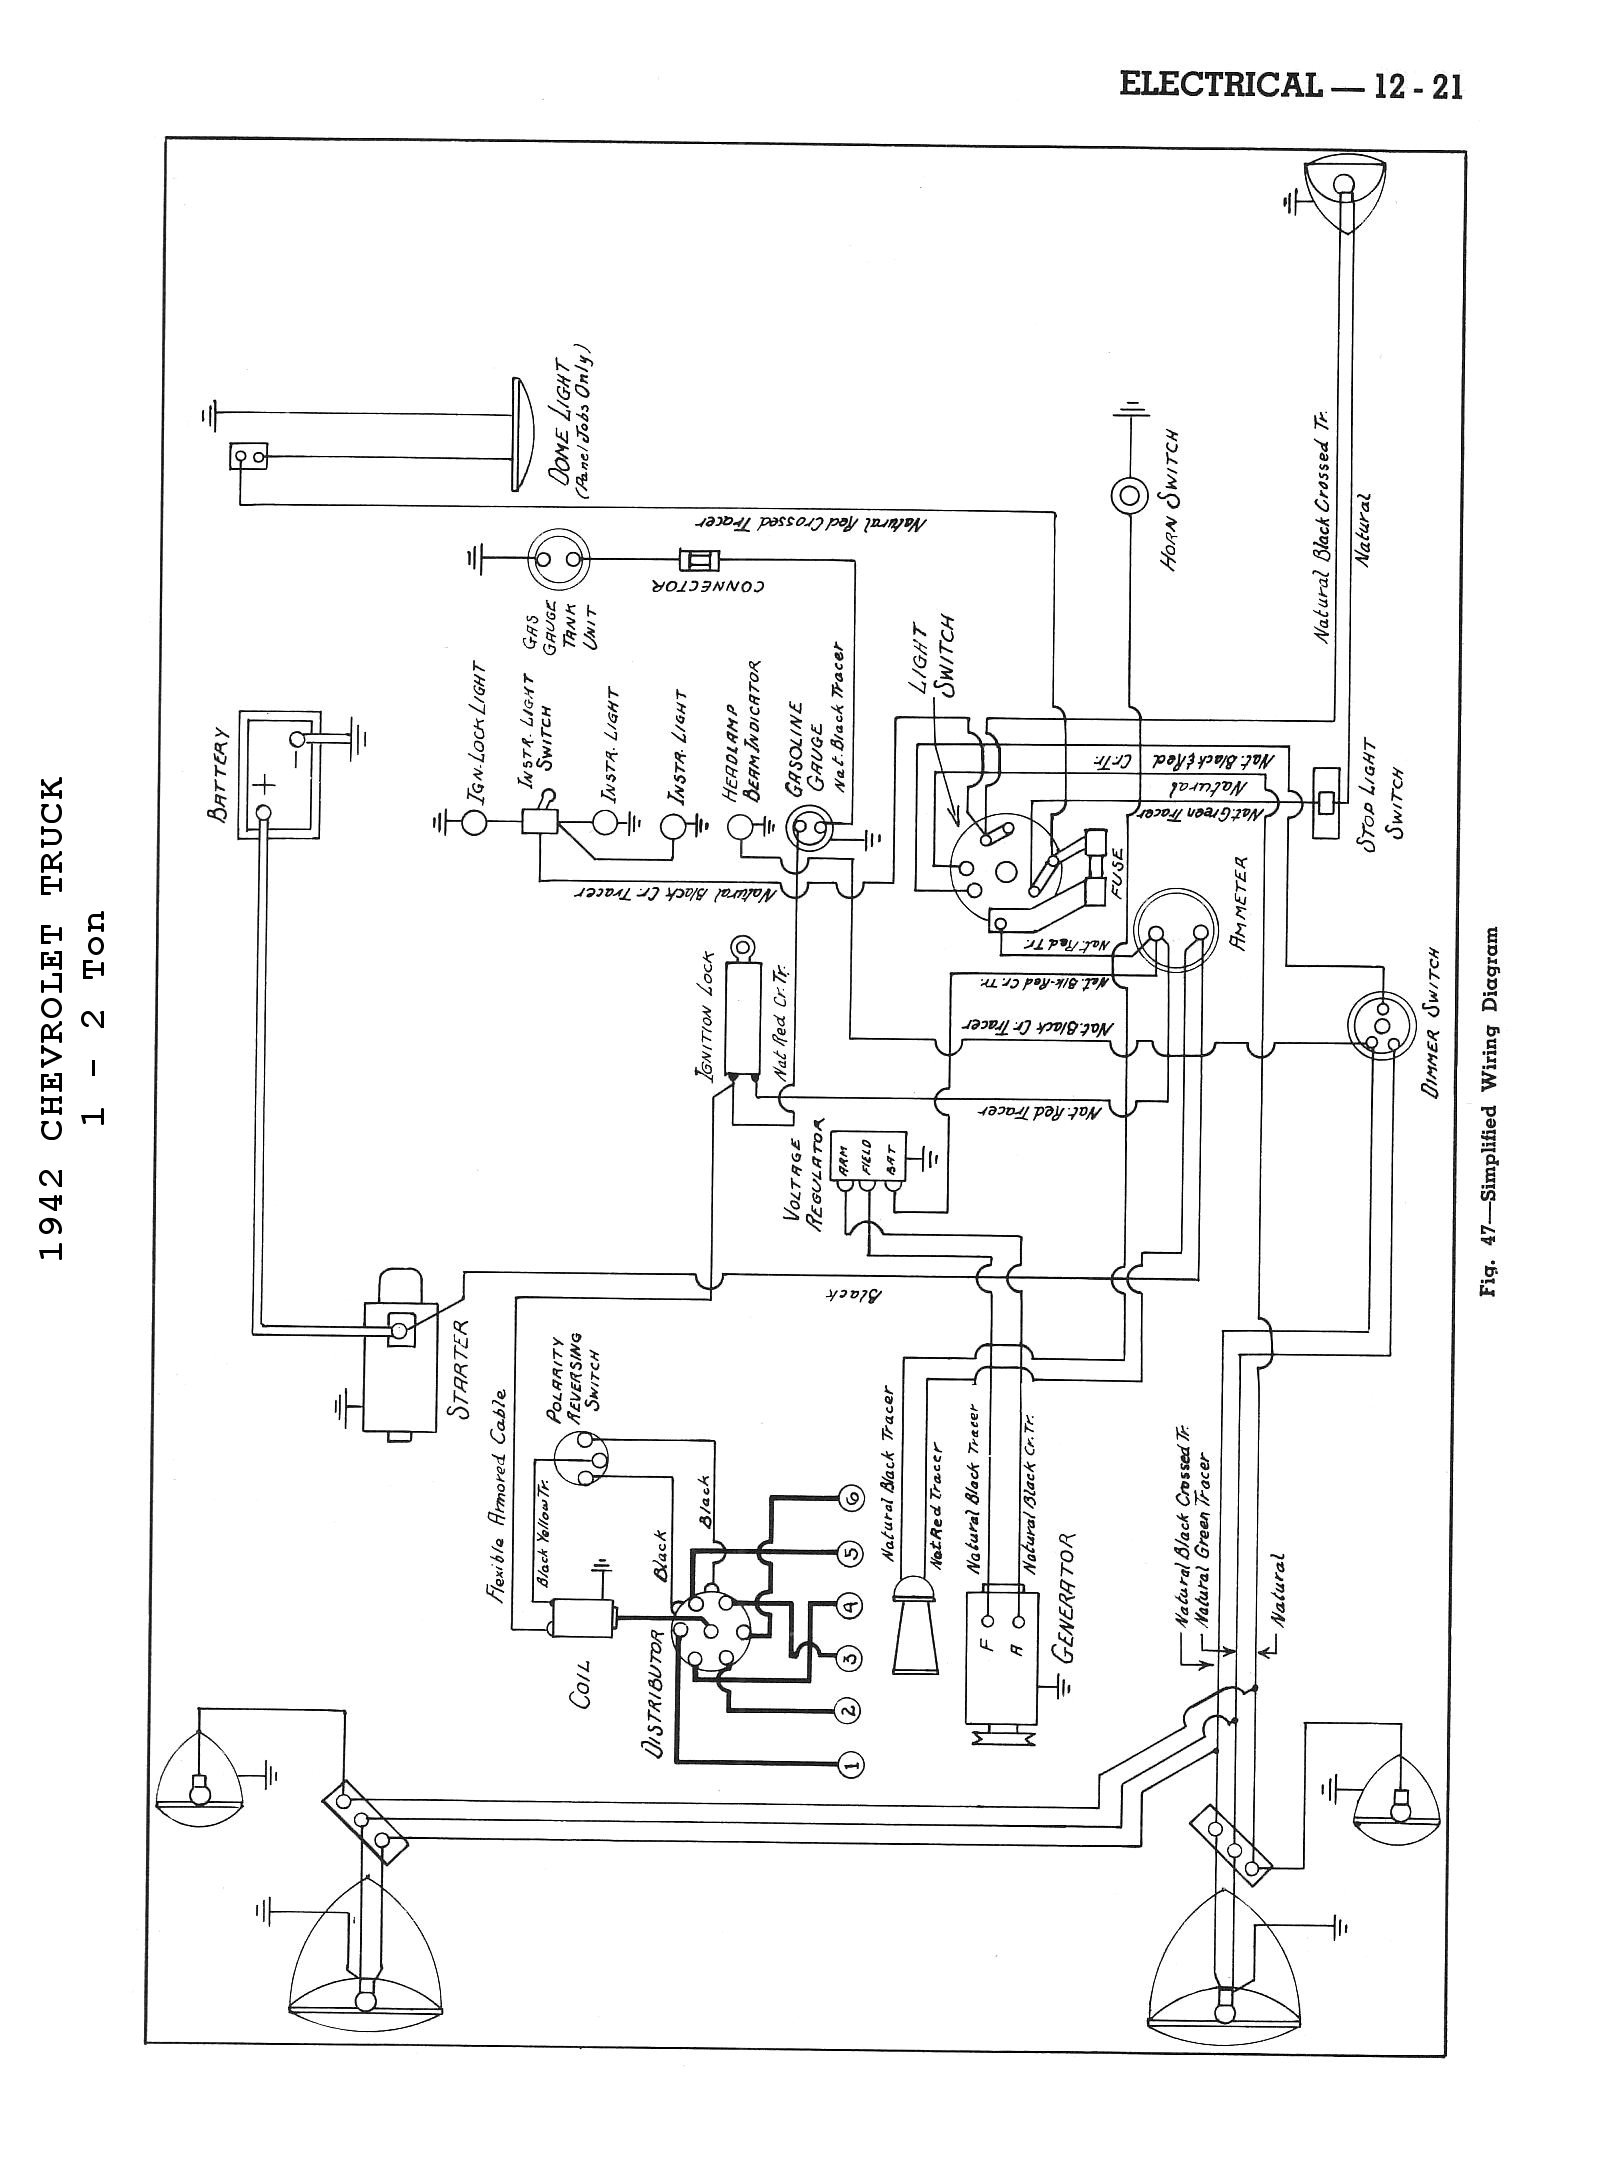 42cm4x2t1221 chevy wiring diagrams 1948 plymouth wiring harness at gsmx.co